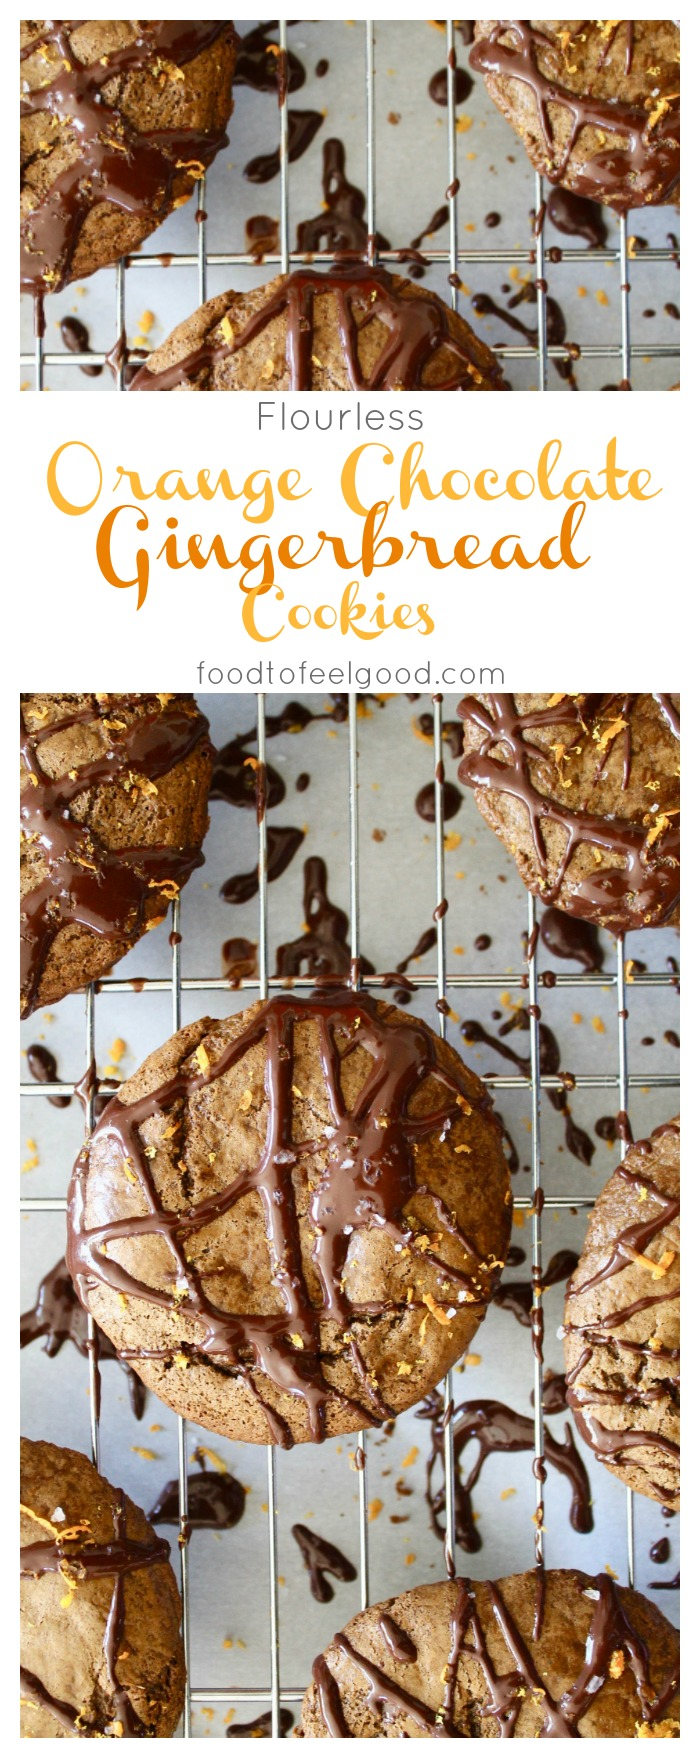 Paleo Flourless Orange Chocolate Gingerbread Cookies | A healthy, gluten-free, dairy-free, holiday recipe. #healthyrecipes #paleo #glutenfree #cookies #holidayideas